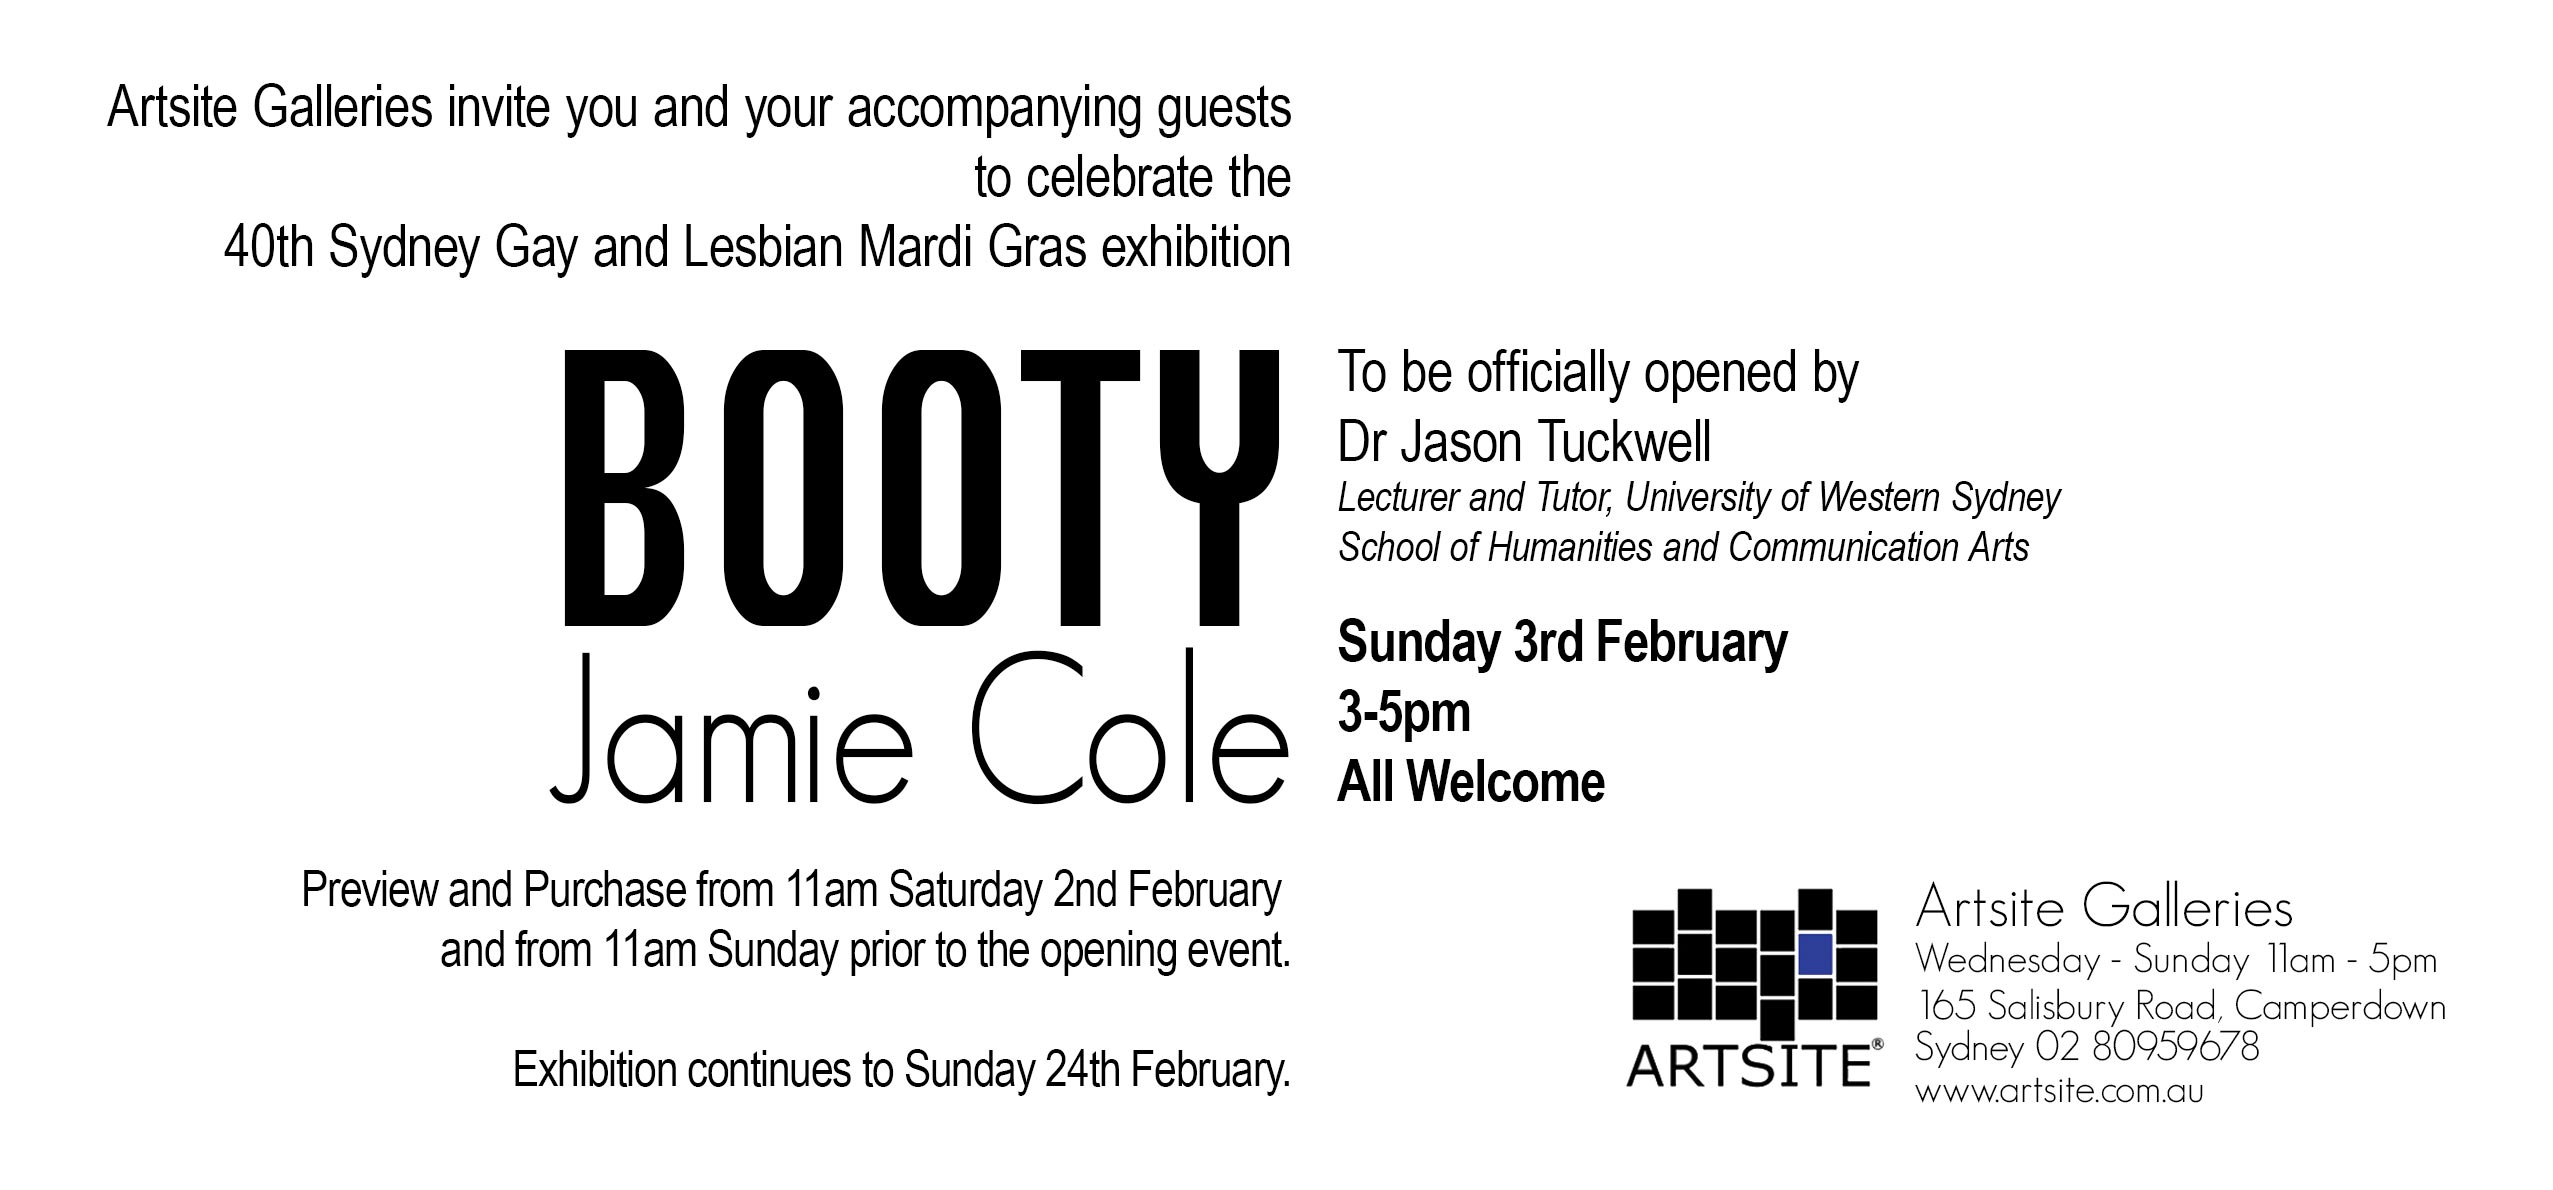 Artsite Gallery Exhibition | Gallery_1 | Jamie Cole | Booty | An Official 2019 Sydney Gay and Lesbian Mardi Gras Event | 02 - 24 February 2019